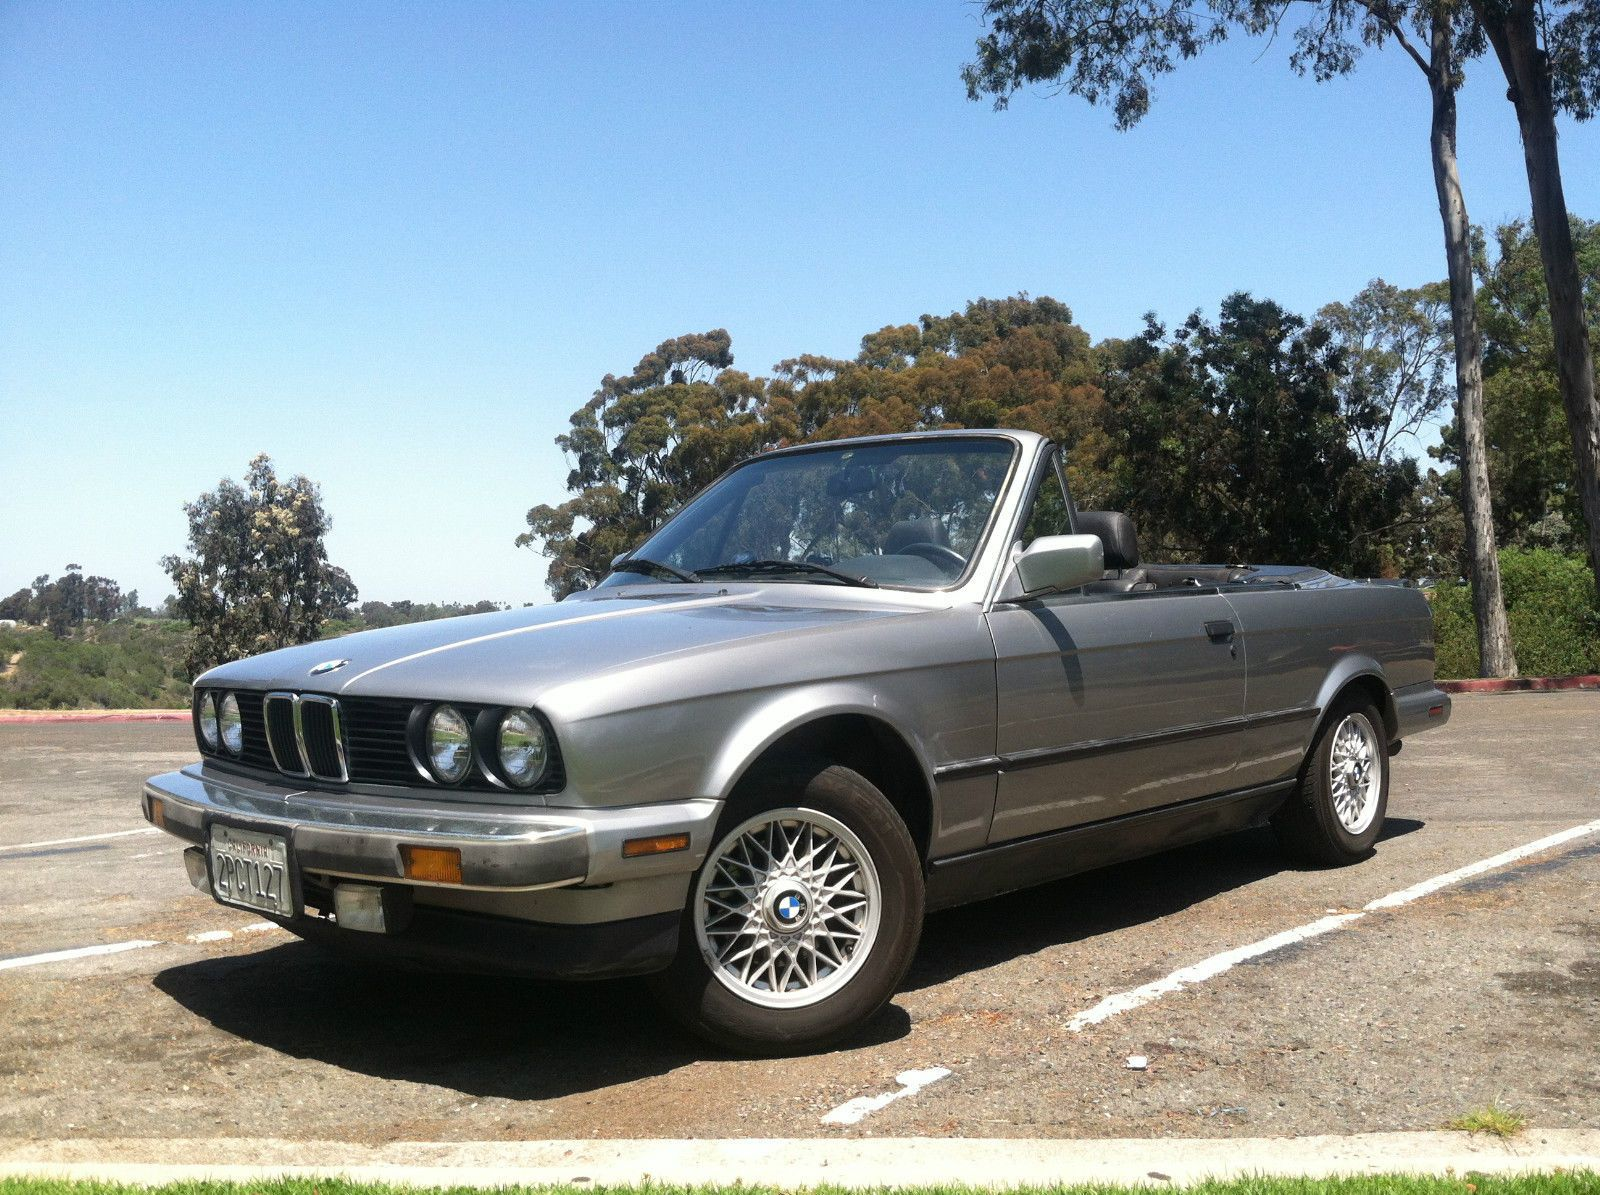 1987 BMW 325i E30 Convertible | Convertibles for sale | Pinterest ...